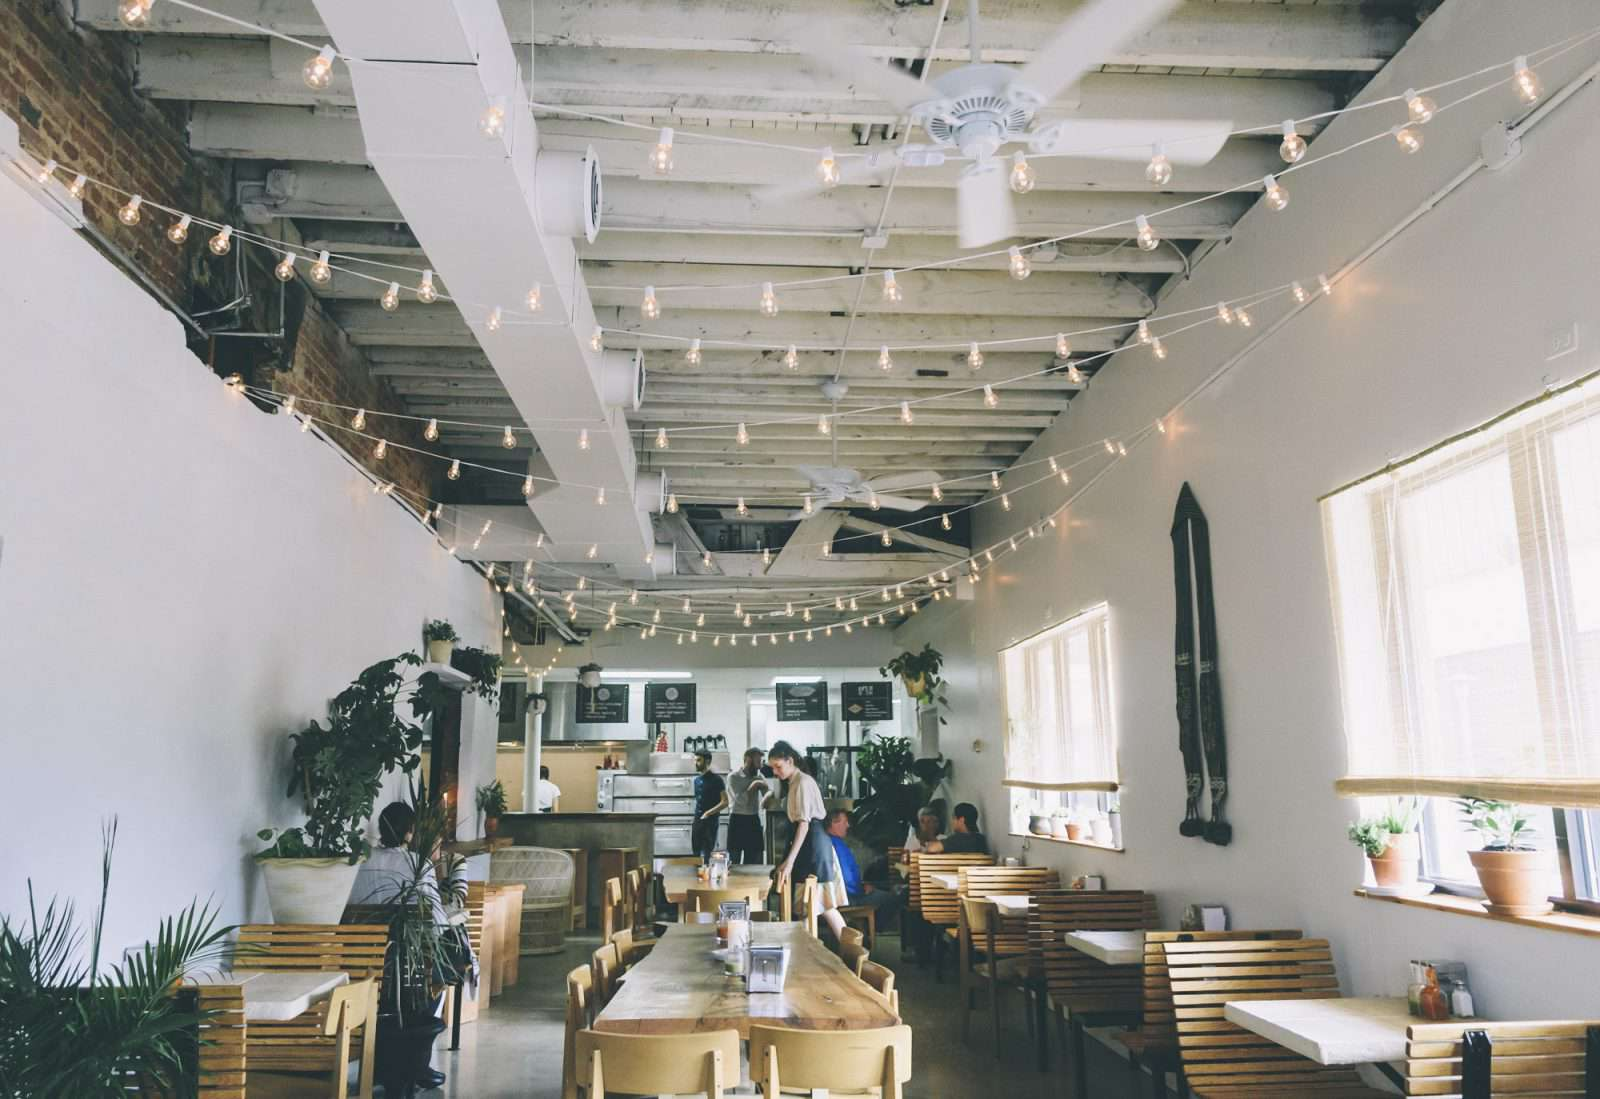 restaurant with white walls, light wooden chairs and high industrial ceilings. There arre strings of lights hanging overhead